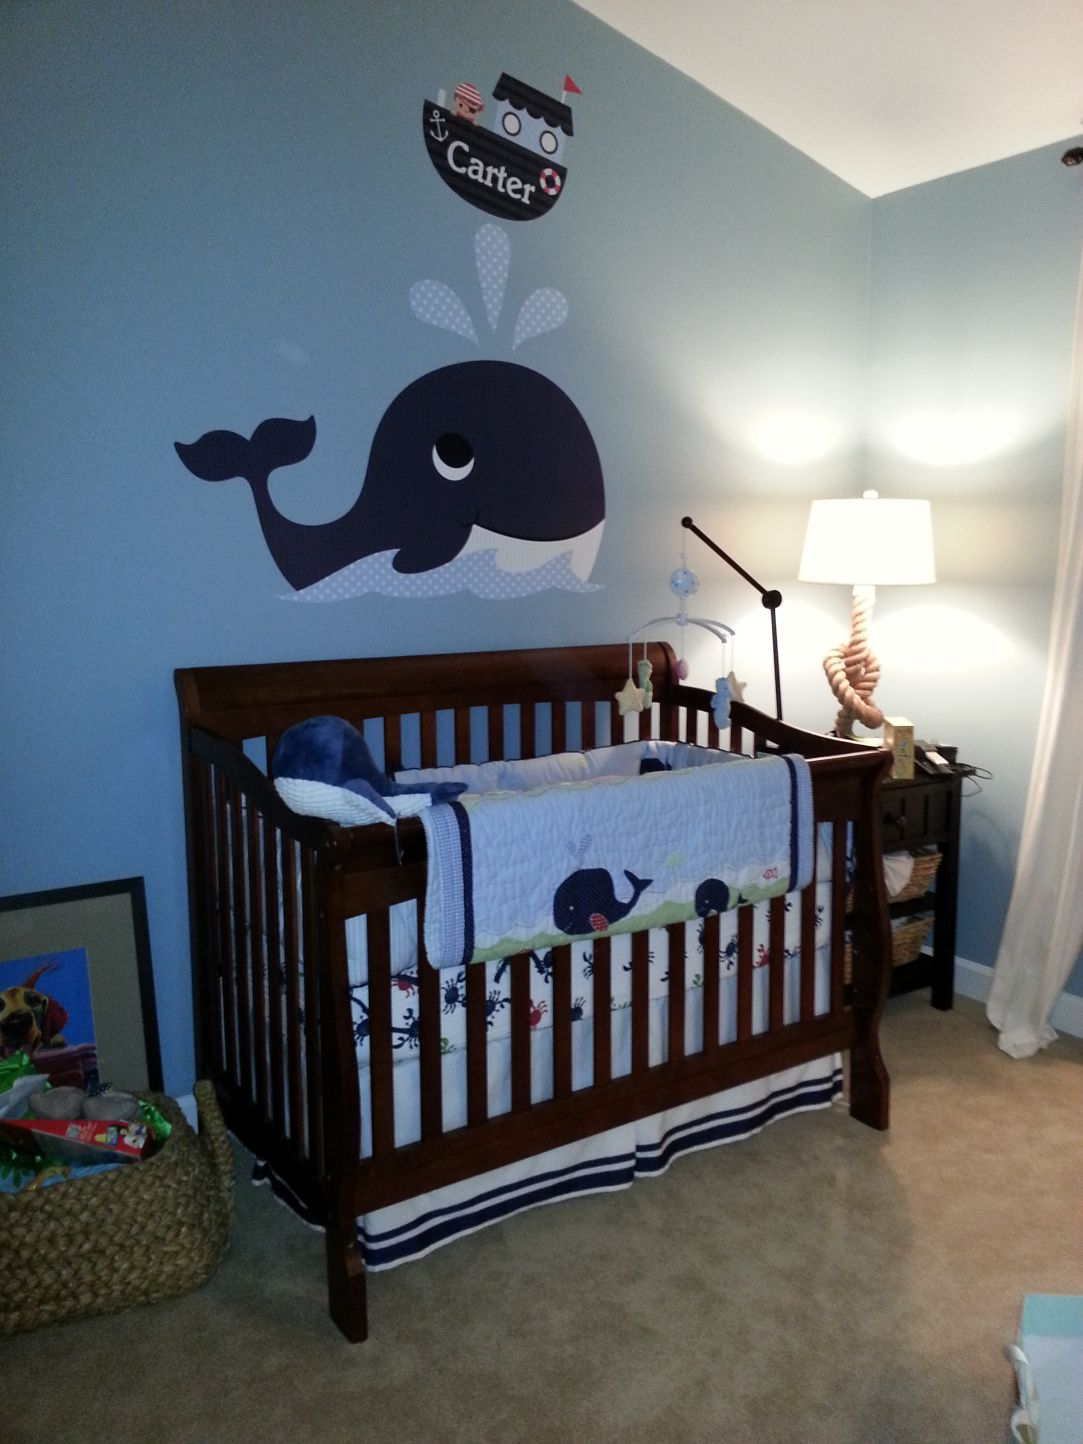 Nautical Themed Baby Rooms Best Paint For Interior Check More At Http Www Chulaniphotography Com Nauti Whale Baby Room Nautical Baby Room Sailor Baby Rooms